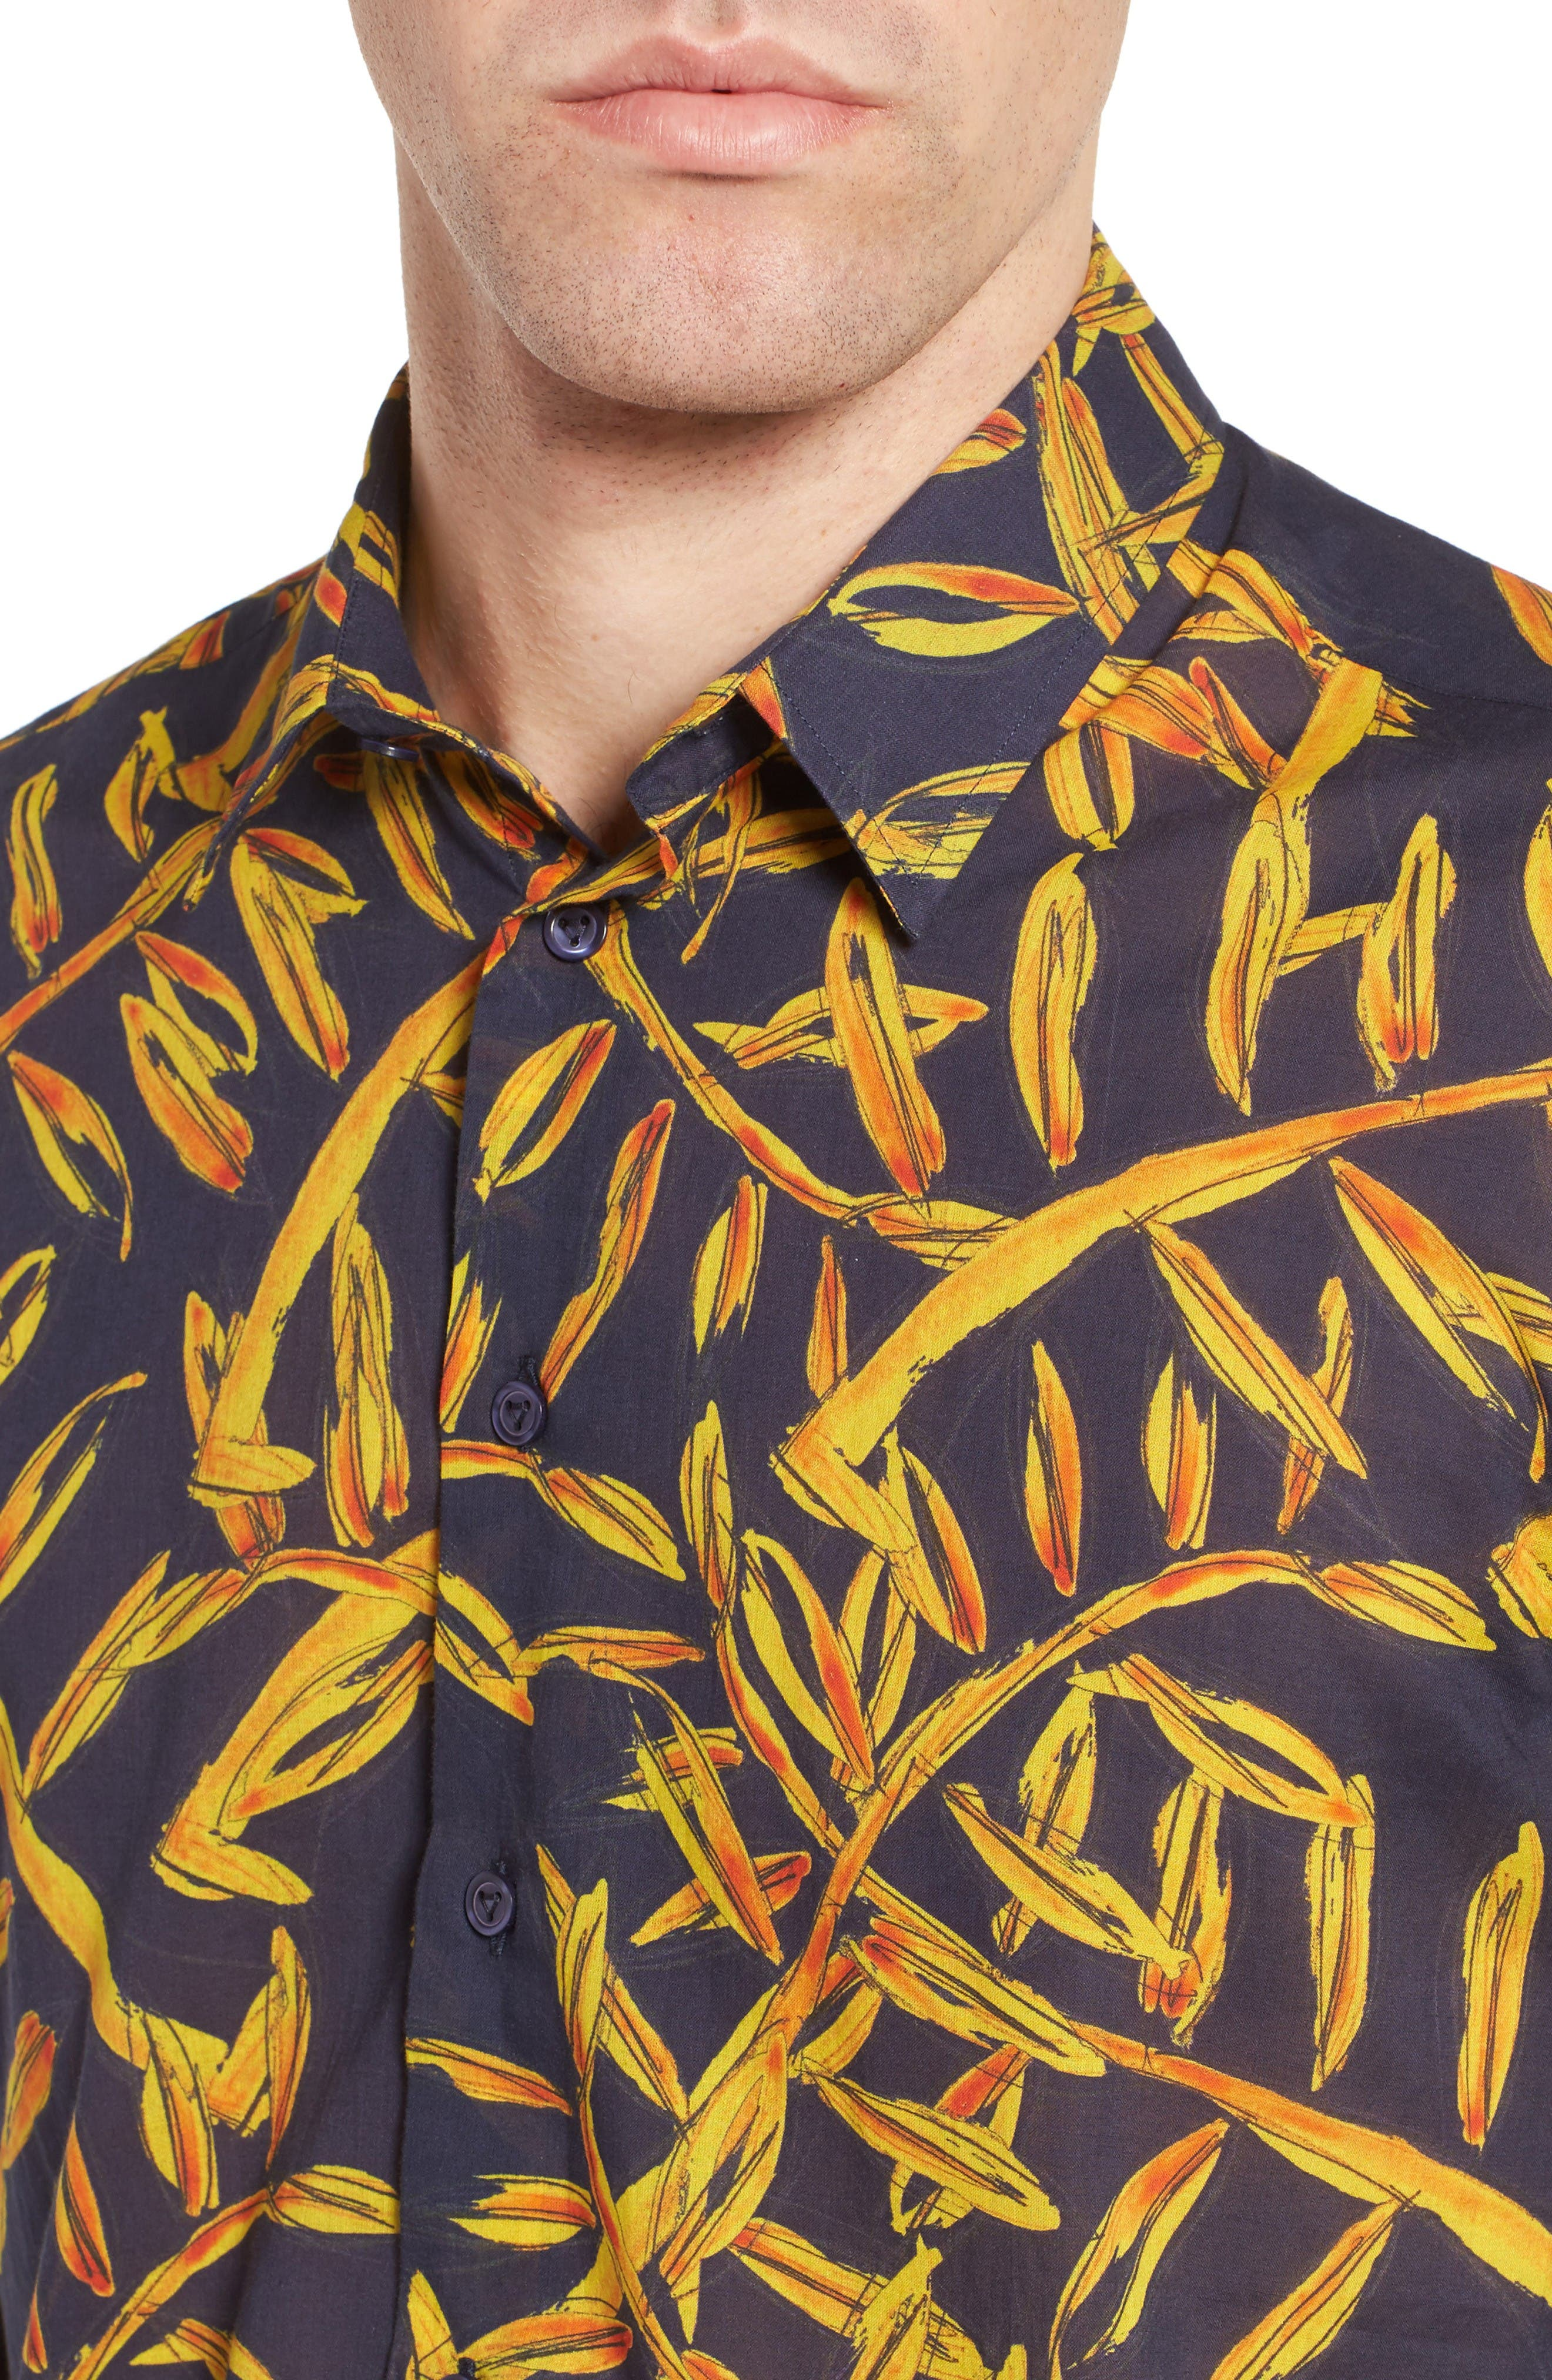 Vilbrequin Gold Palms Voile Sport Shirt,                             Alternate thumbnail 2, color,                             Navy Blue